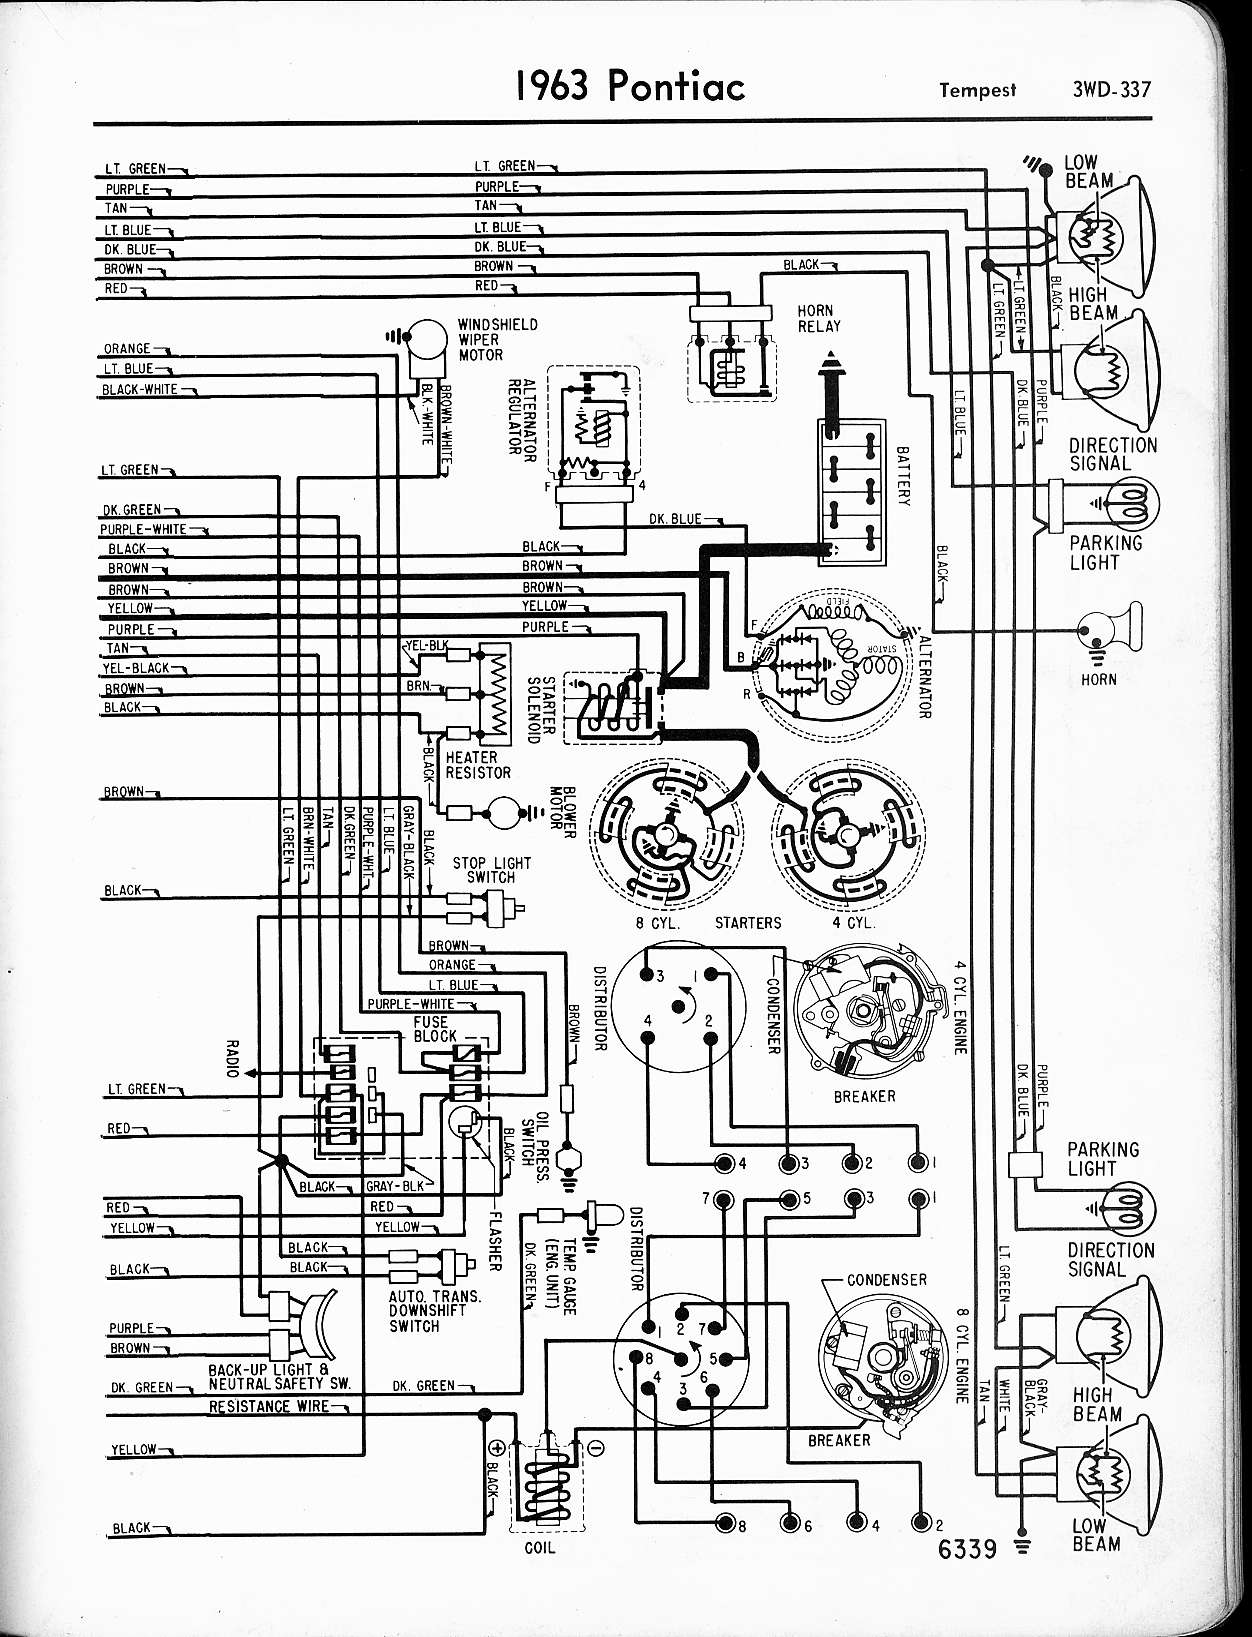 64 Gto Wiring Diagram on 1966 Pontiac Bonneville Wiring Diagram